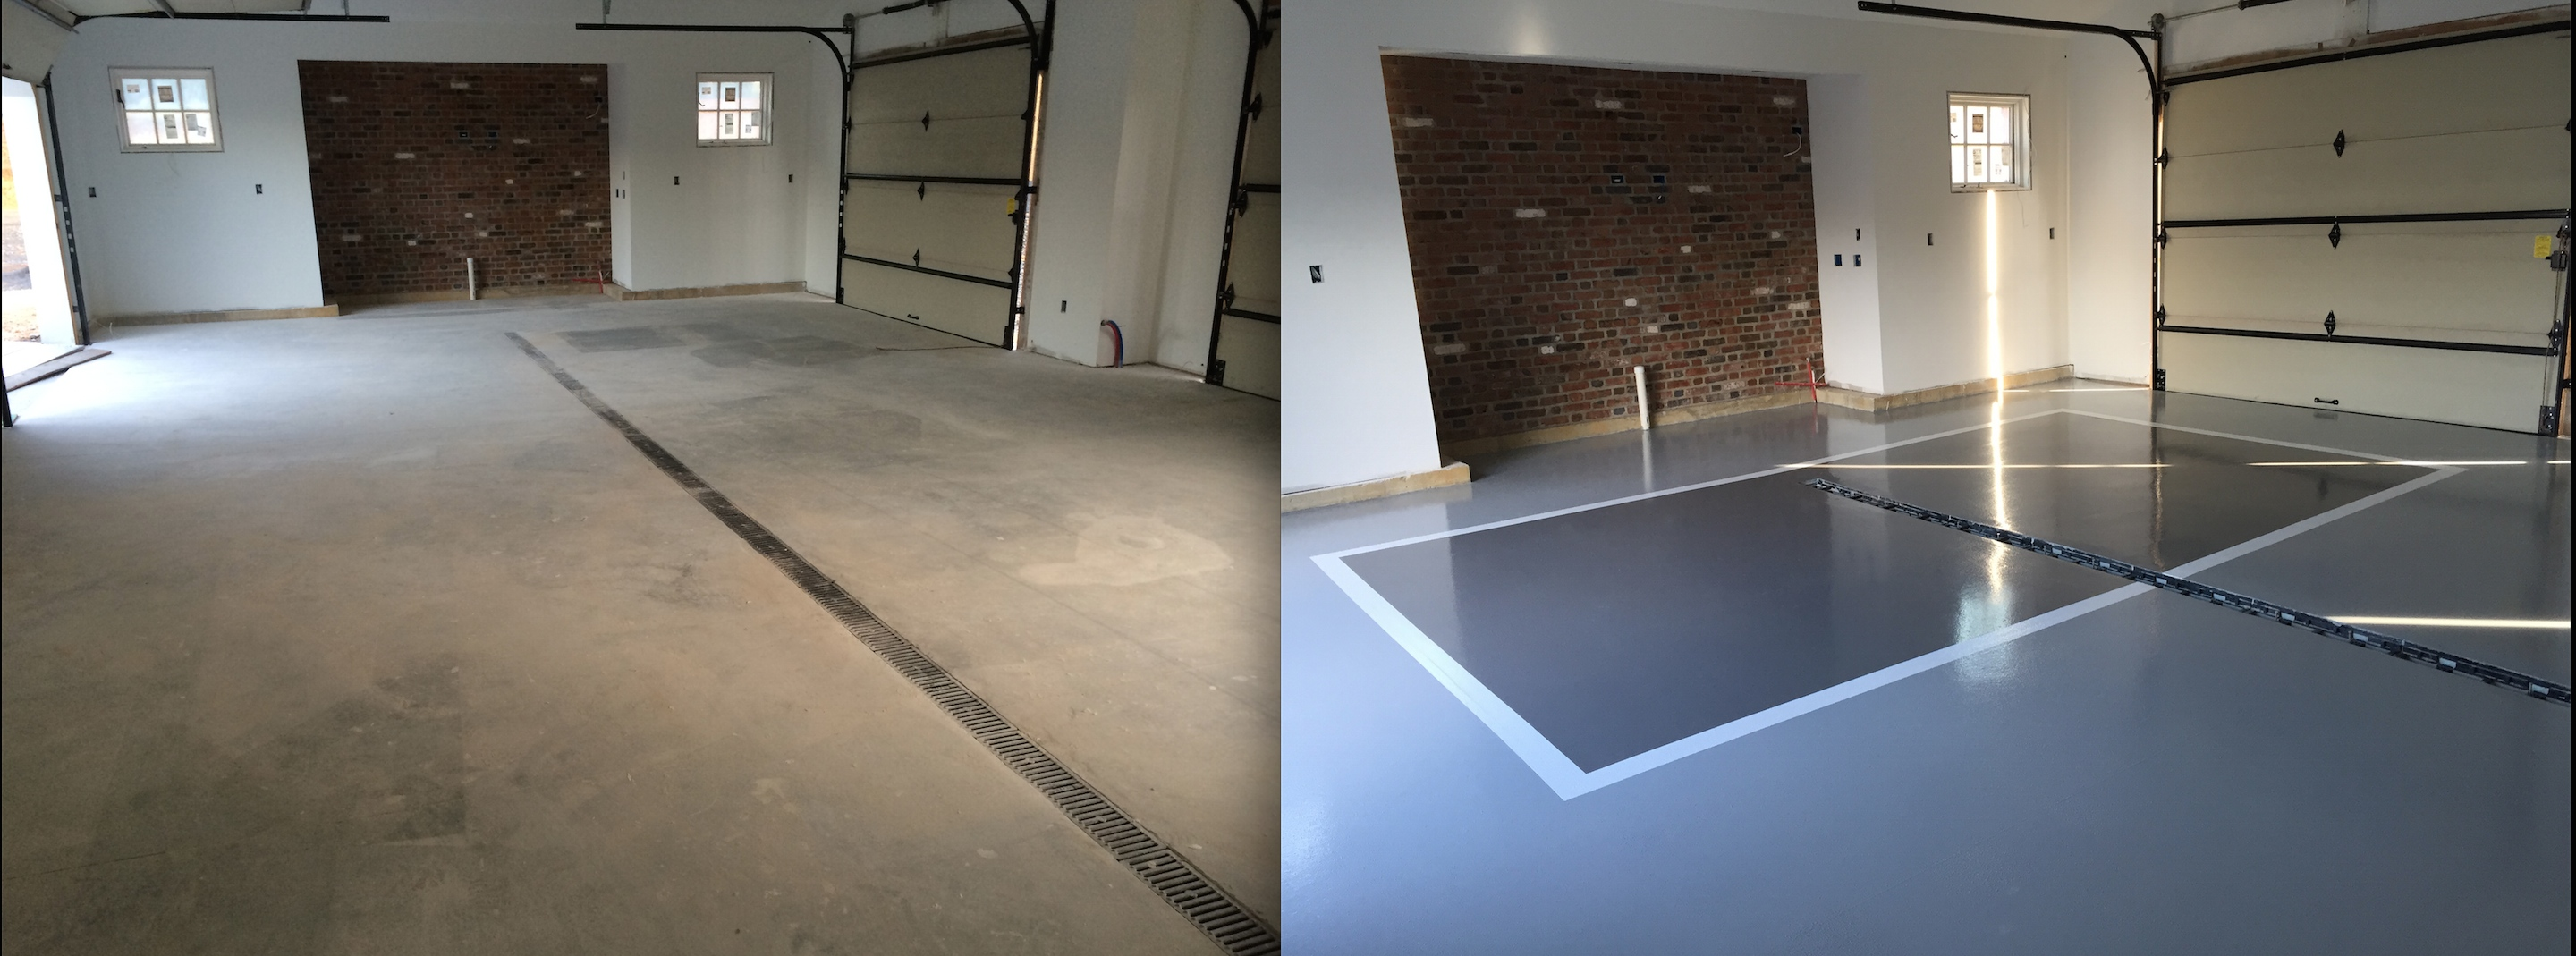 Epoxy Before And After : Concrete floor solutions inc video image gallery